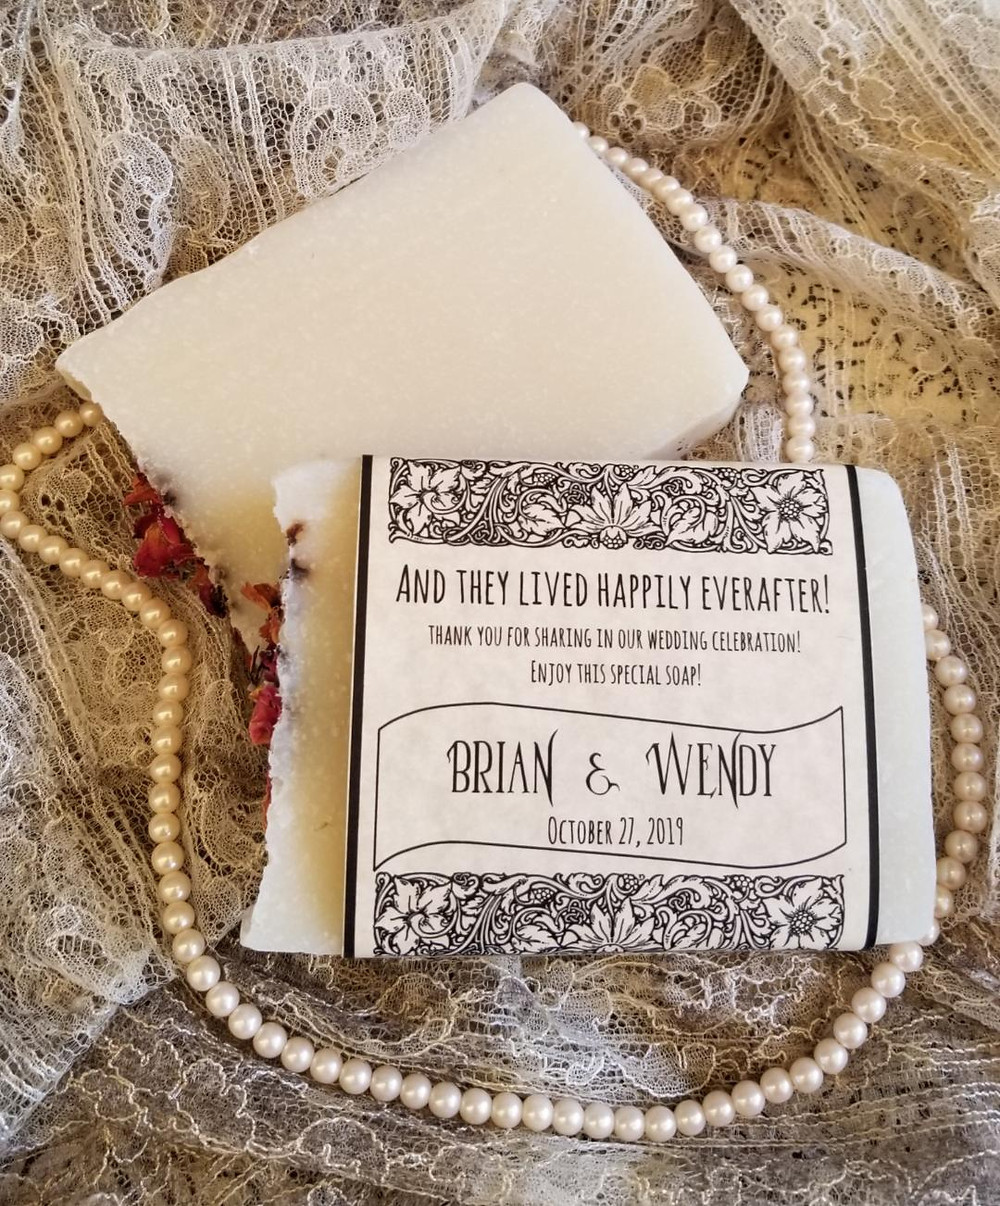 Wedding favor soap